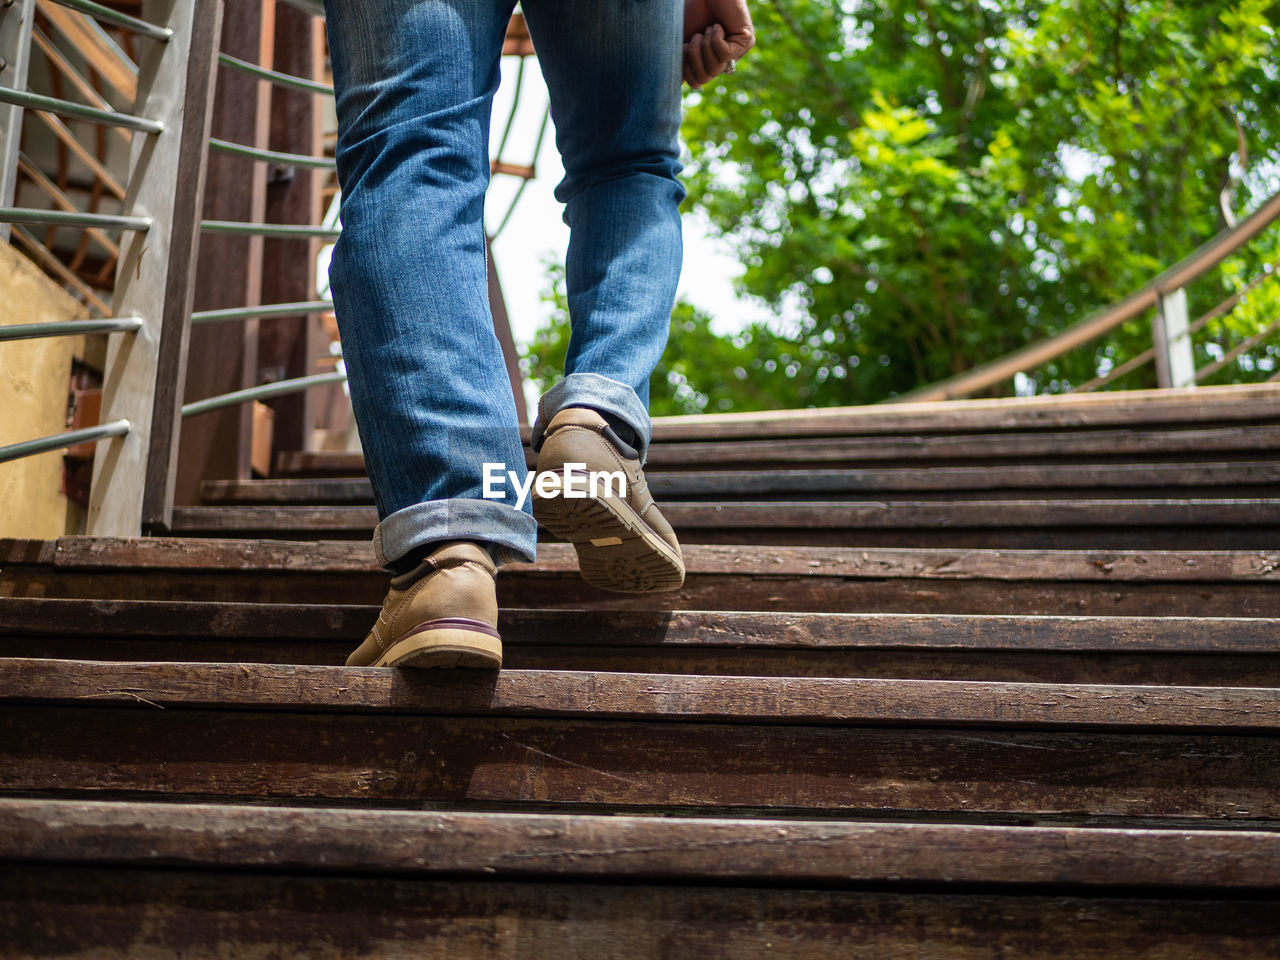 low section, human leg, staircase, architecture, one person, human body part, men, jeans, body part, real people, casual clothing, shoe, day, railing, moving up, steps and staircases, low angle view, lifestyles, leisure activity, outdoors, human foot, human limb